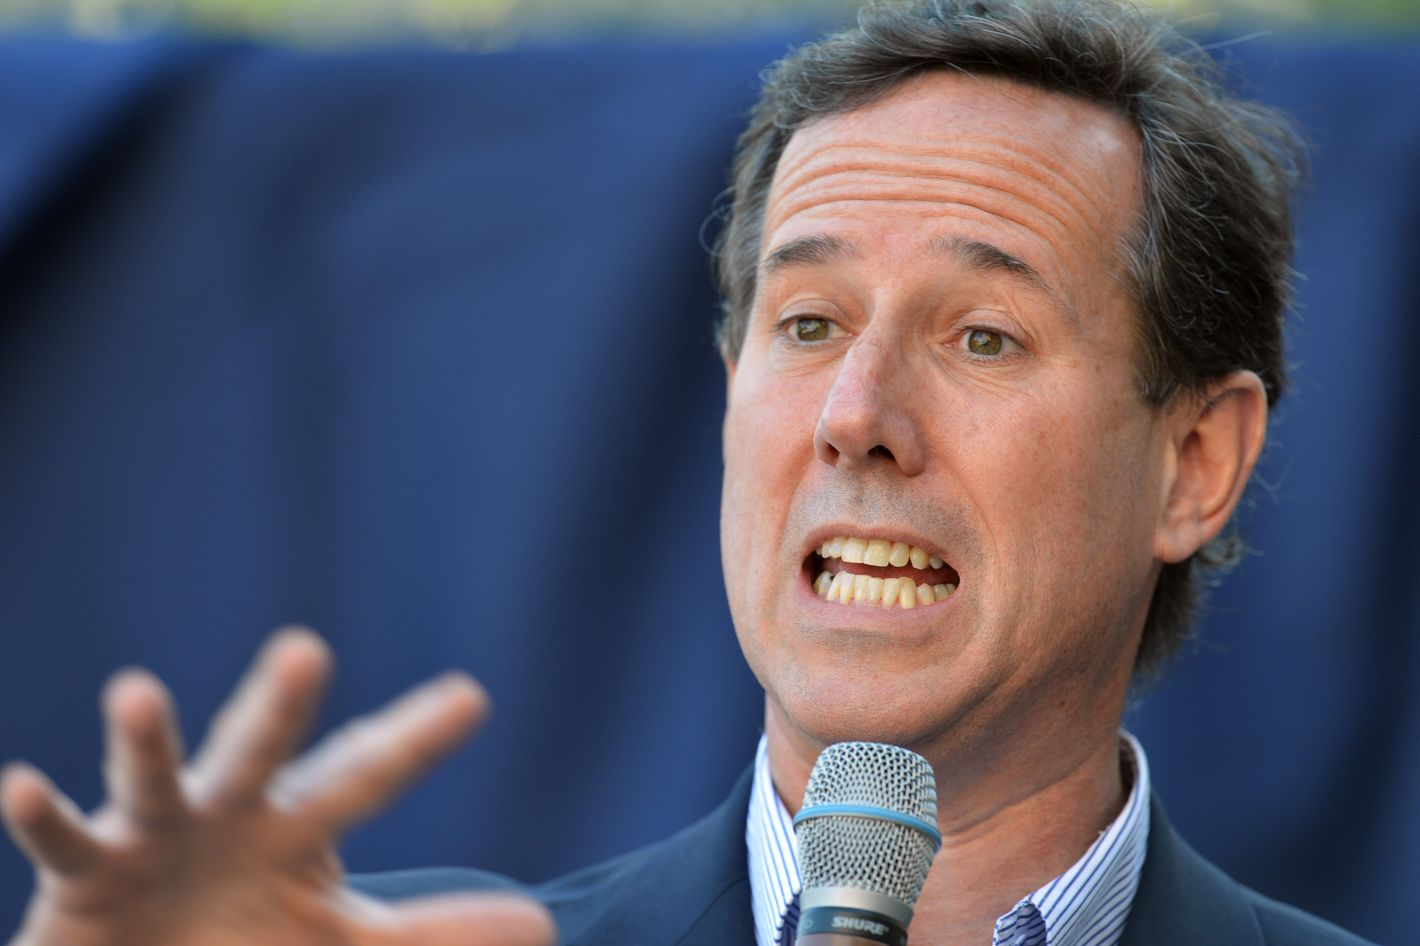 Republican presidential hopeful Rick Santorum speaks to supporters in front of the Blair County Courthouse during a campaign rally on April 4, 2012, in Hollidaysburg, Pennsylvania.